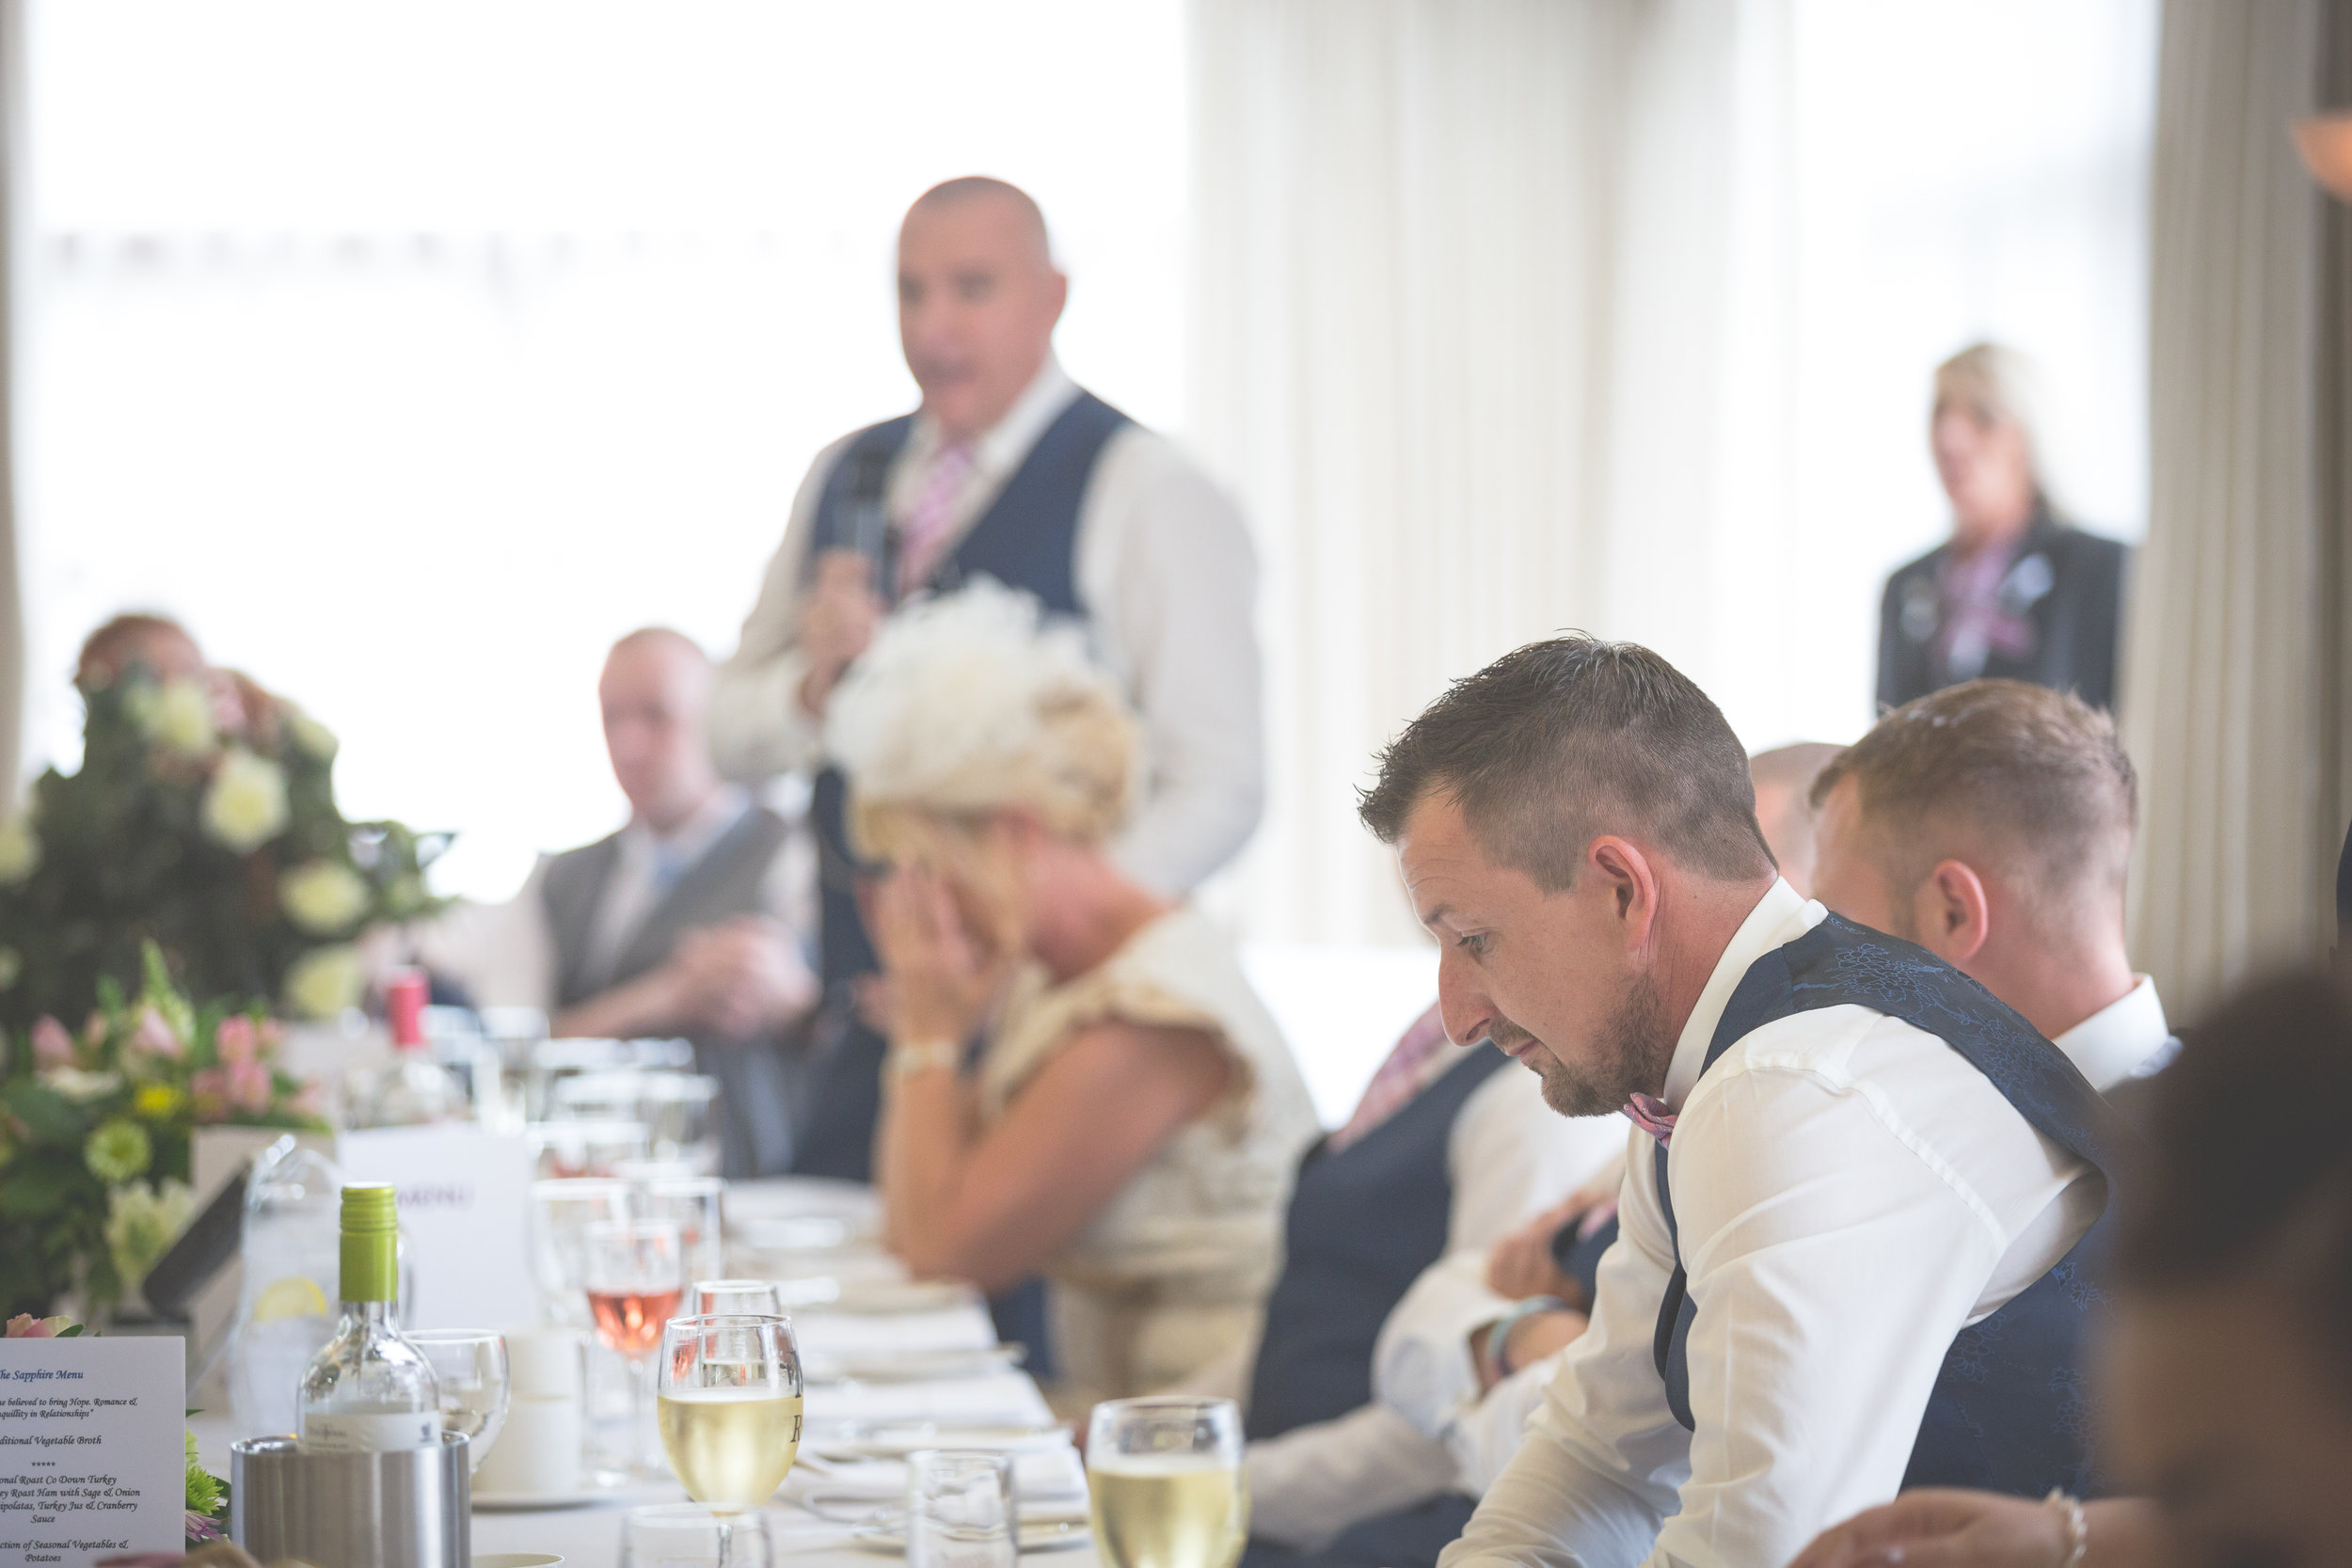 Antoinette & Stephen - Speeches | Brian McEwan Photography | Wedding Photographer Northern Ireland 47.jpg